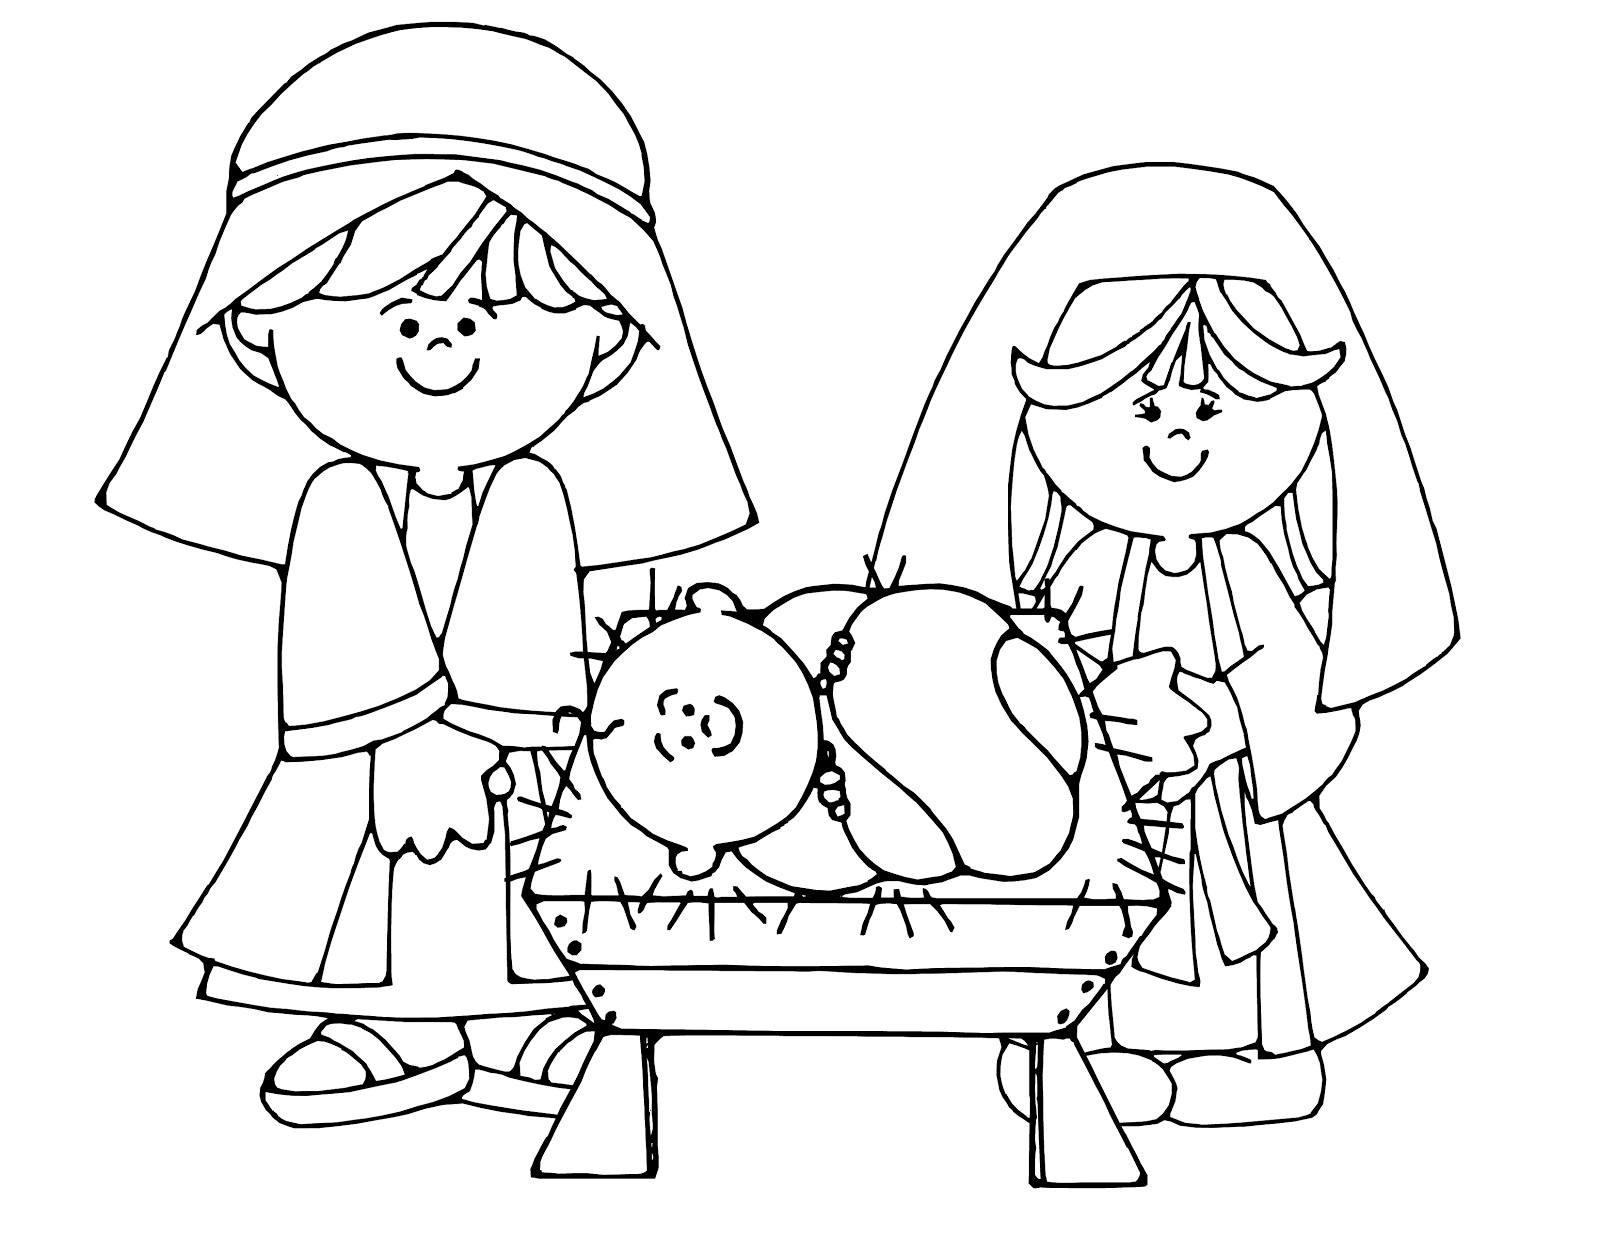 simple nativity scene colouring page | kids crafts ...